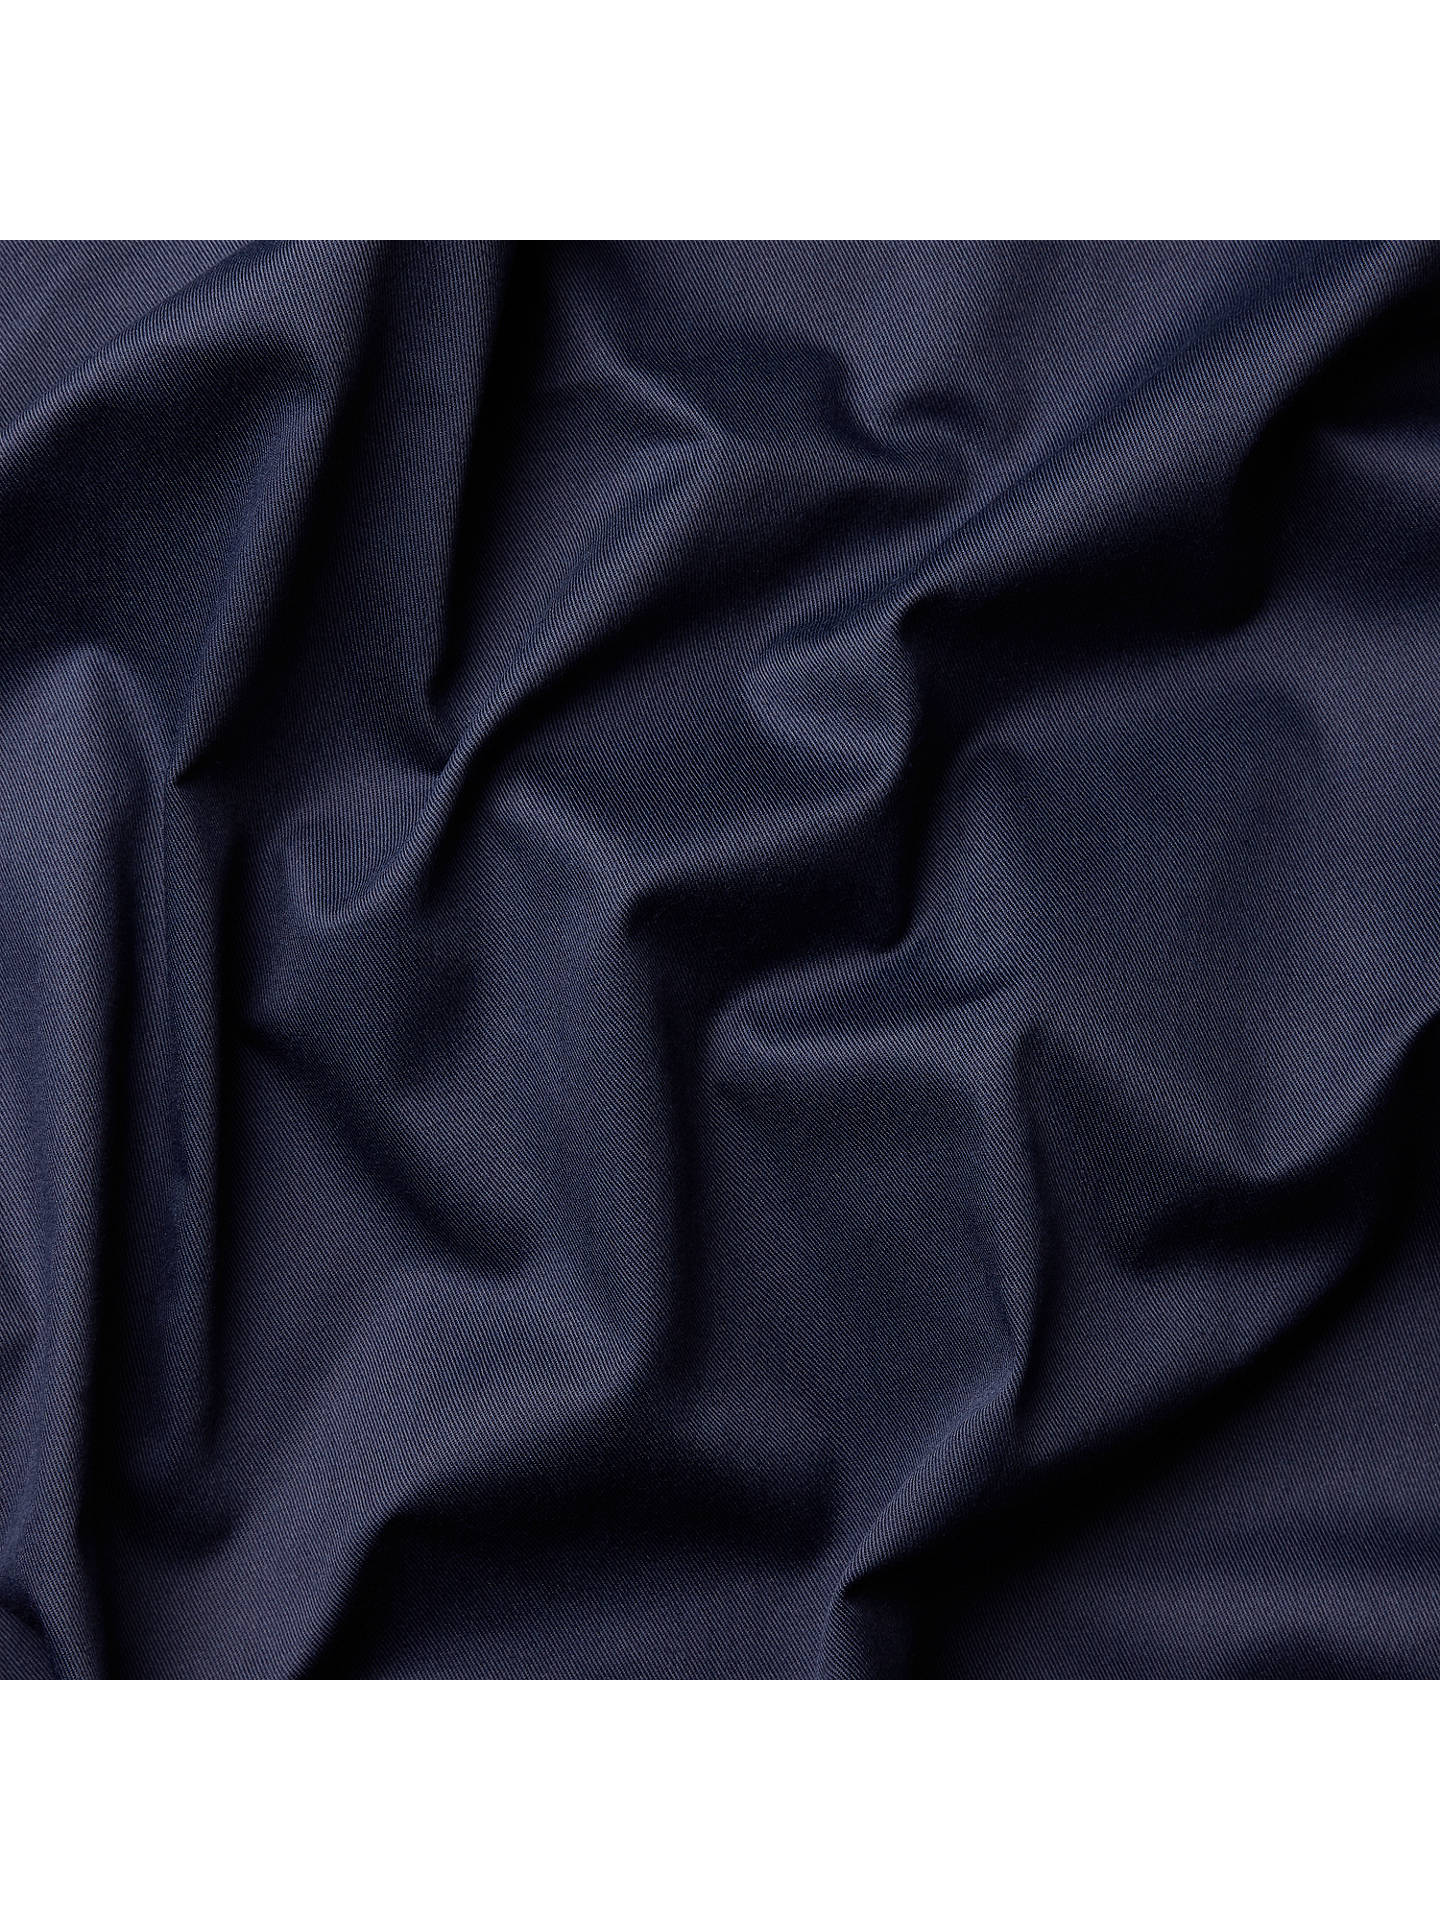 Buy Oddies Textiles Gaberchino Fabric, Navy Online at johnlewis.com